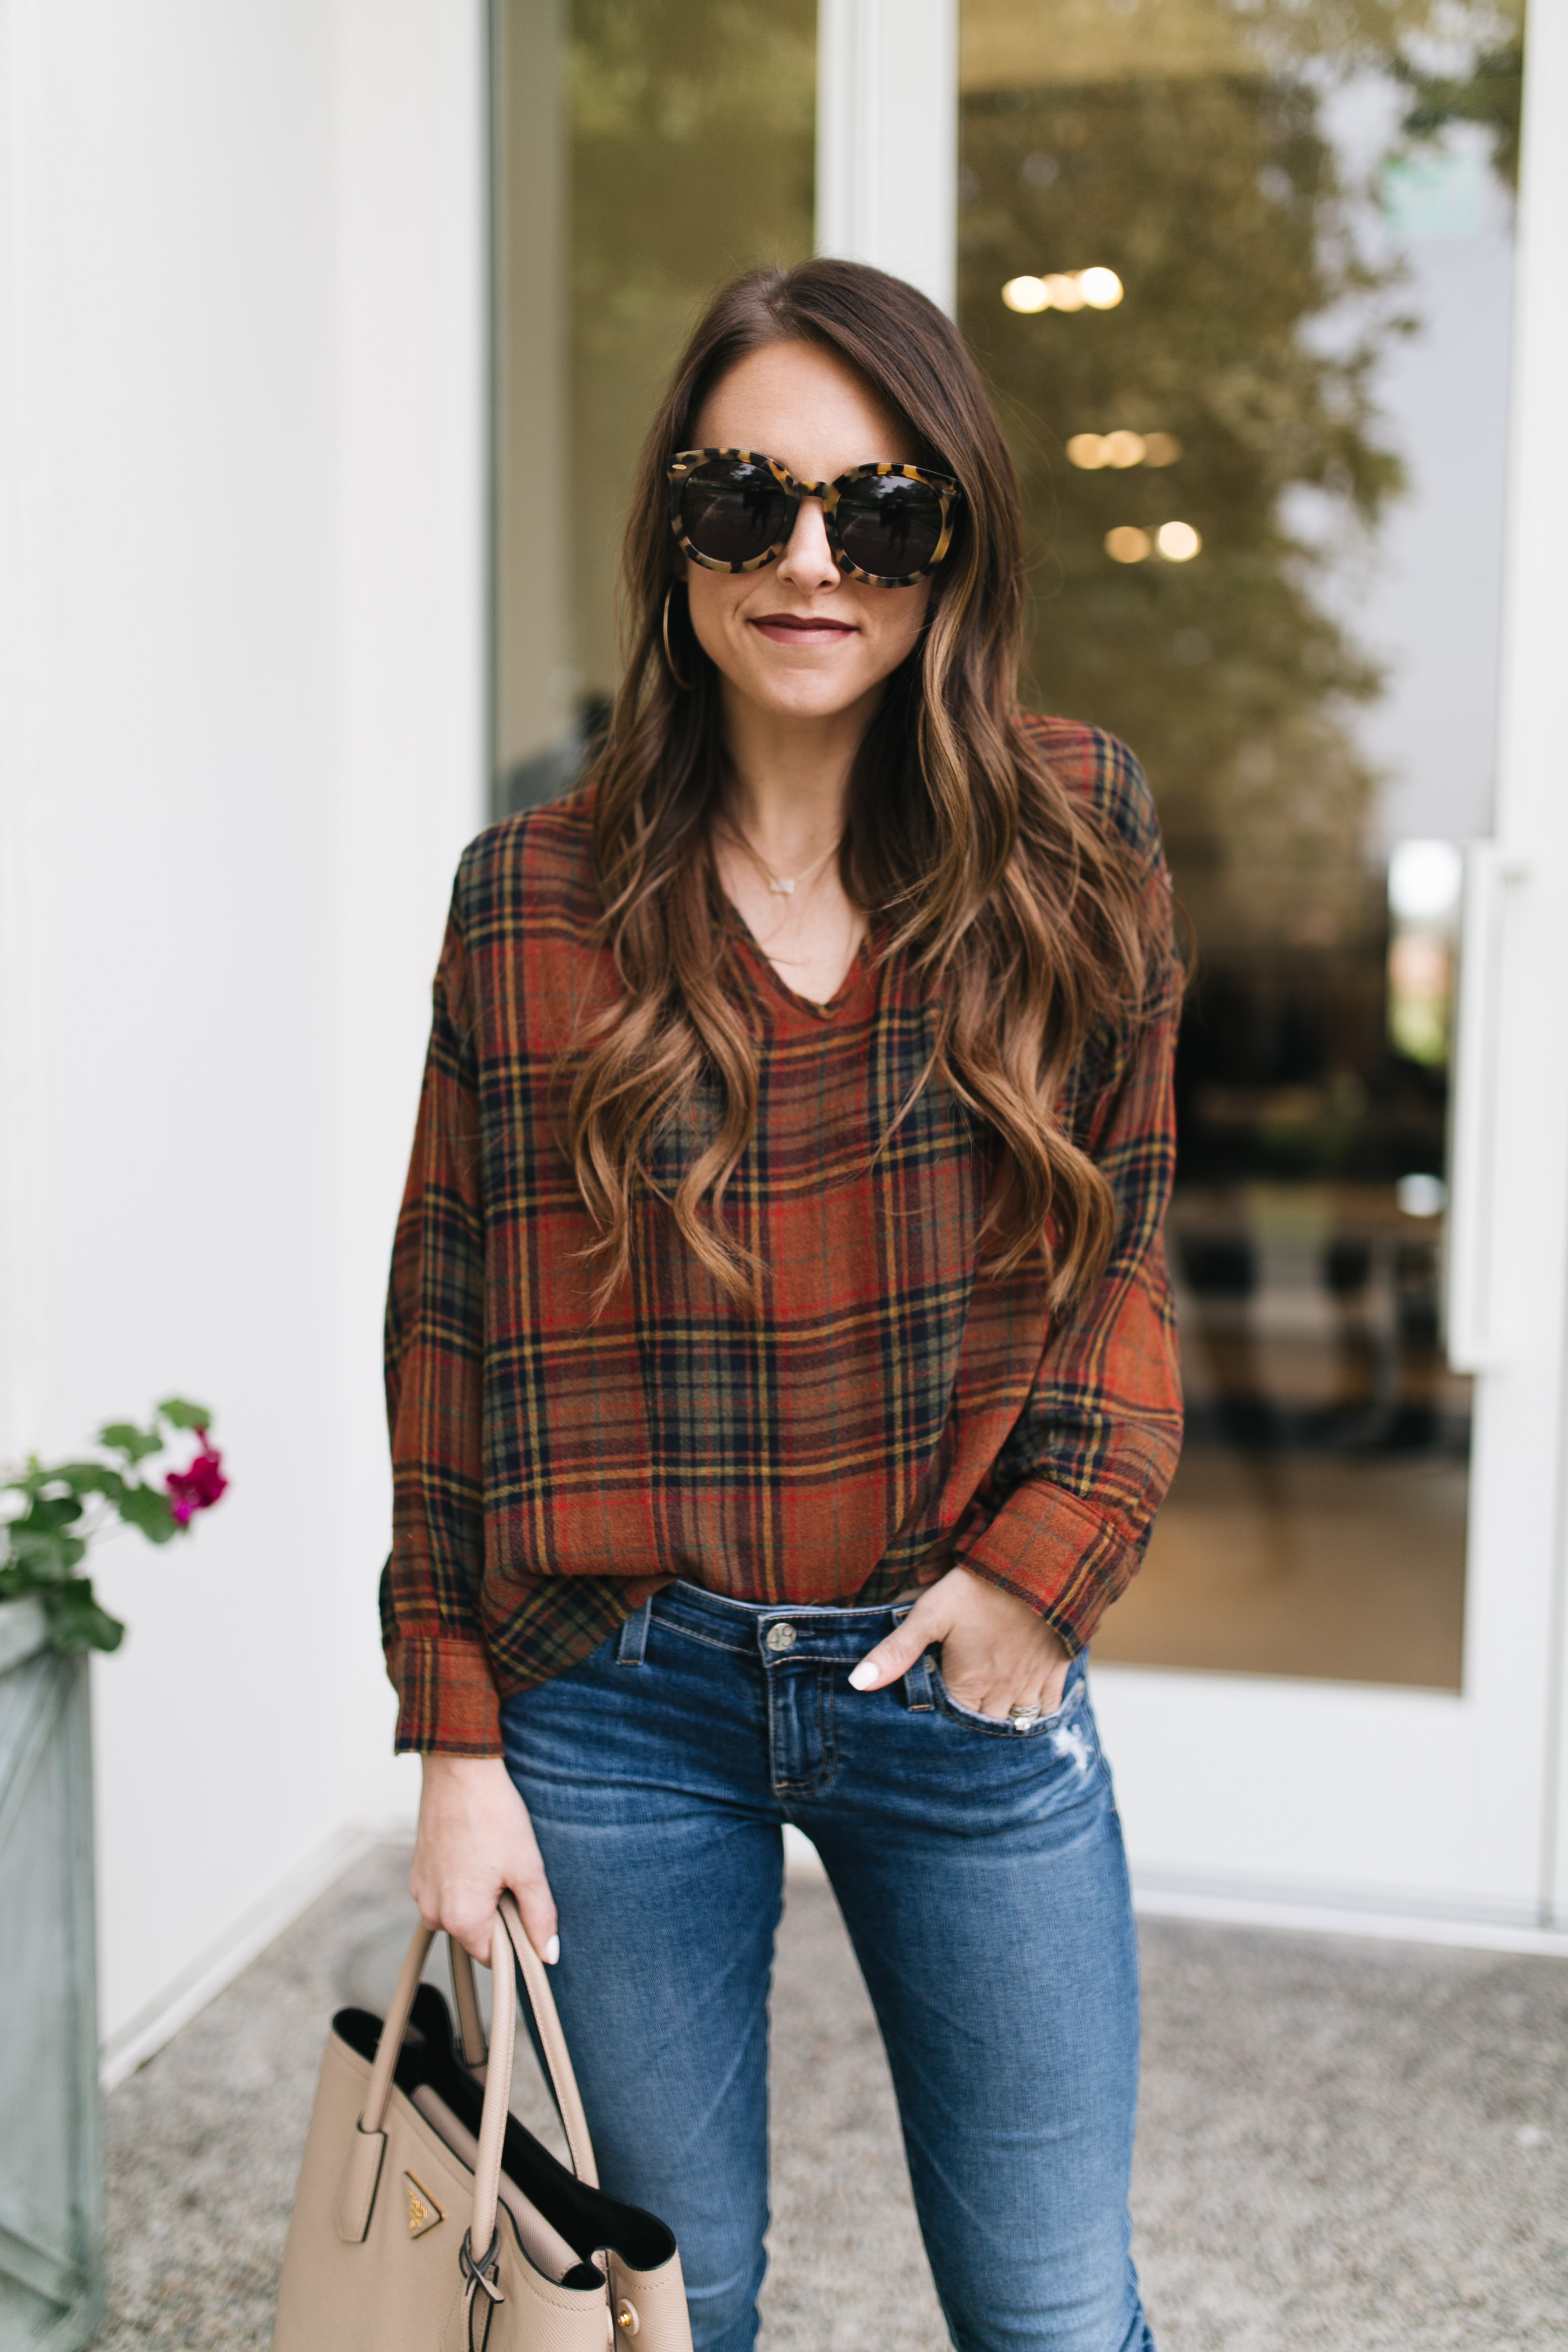 Style blogger Daryl-Ann Denner shares ten comfortable thanksgiving day outfit ideas